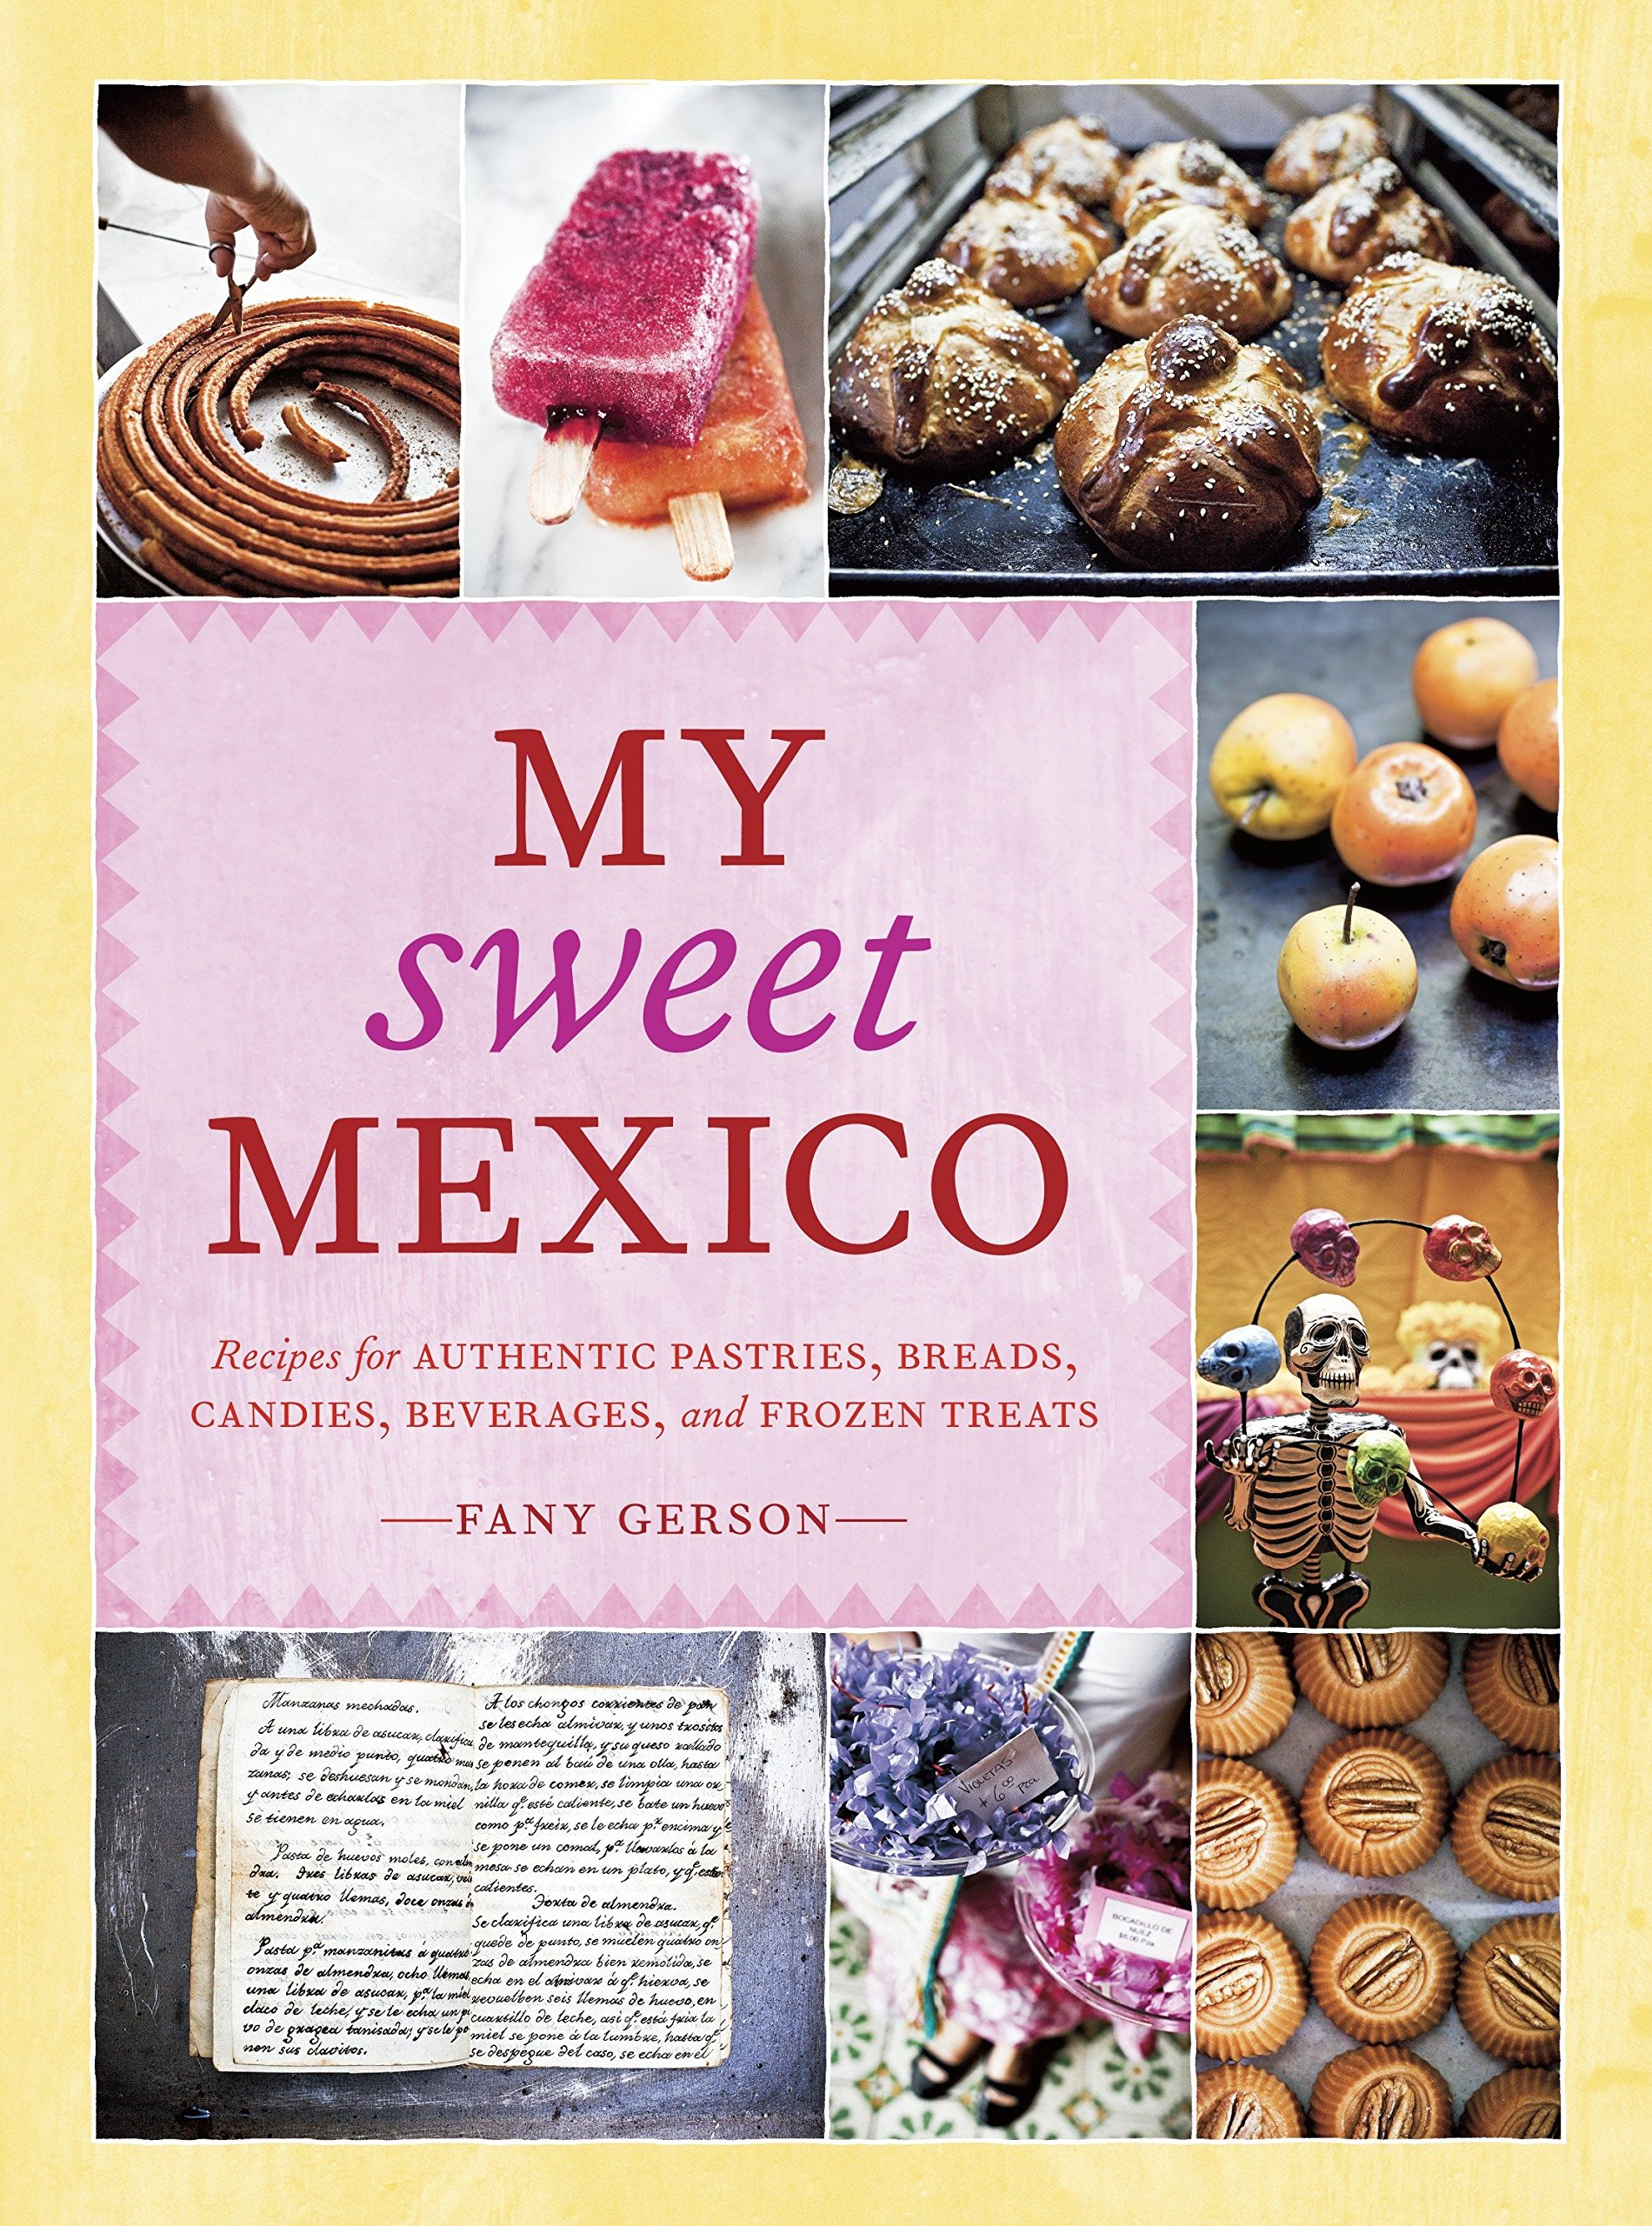 My Sweet Mexico: Recipes for Authentic Pastries, Breads